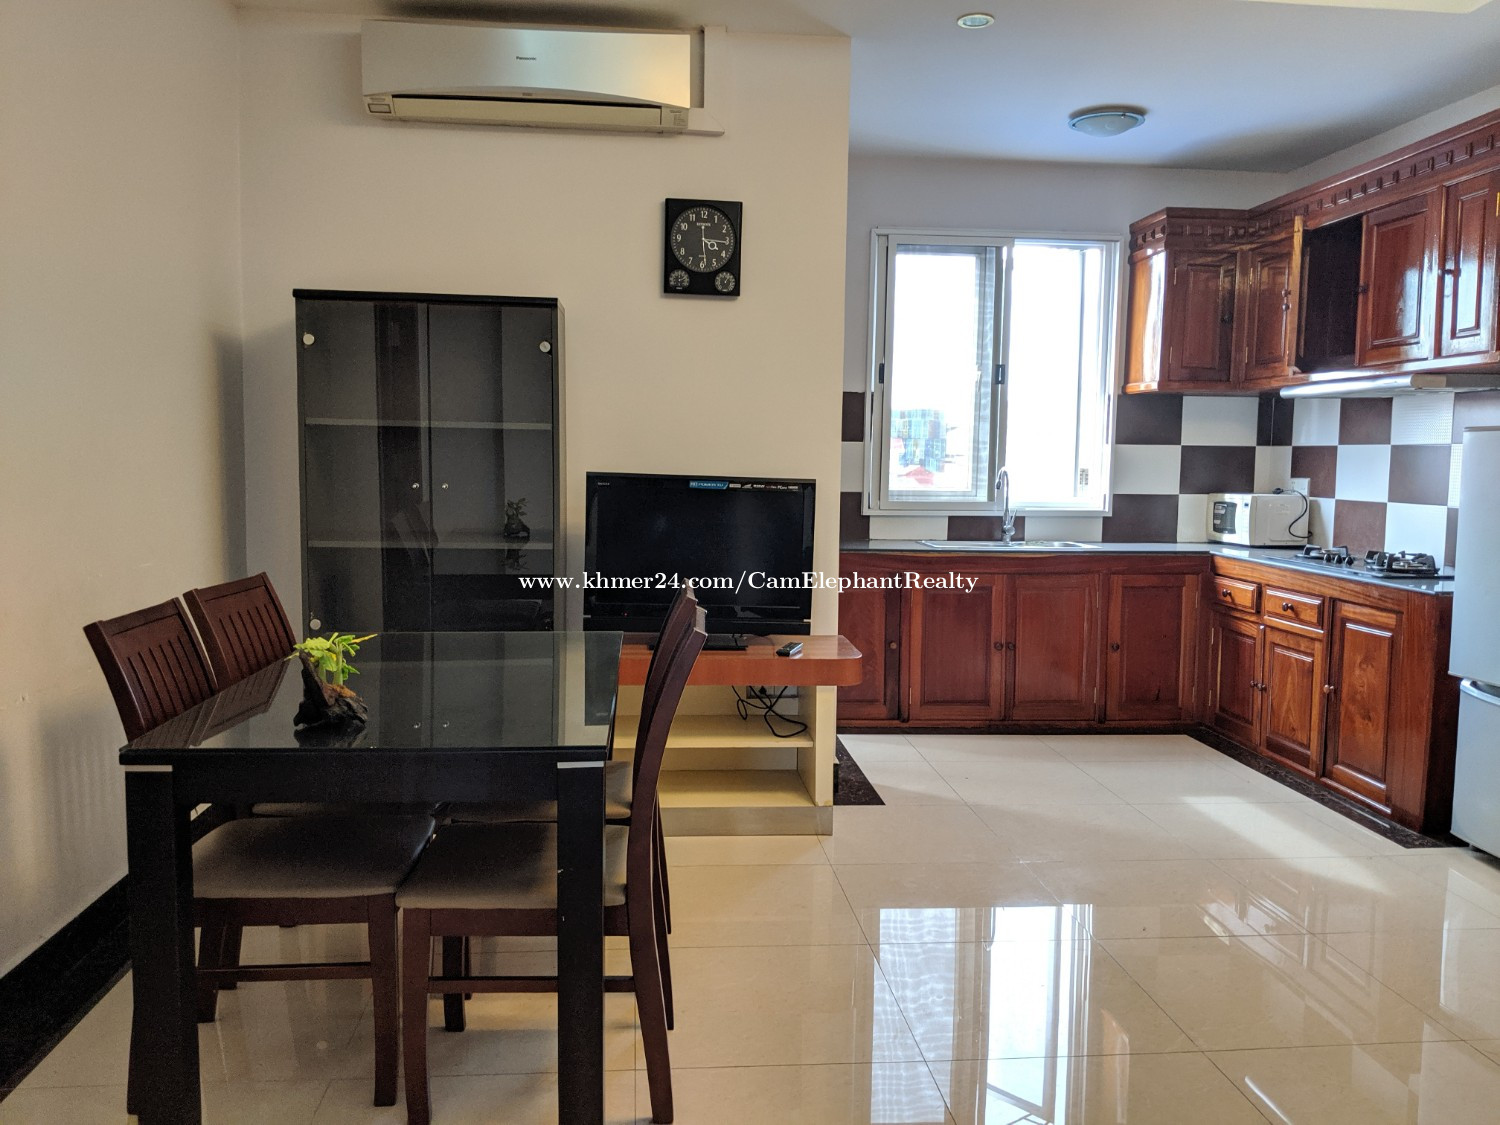 Nice Gym Terrace with Garden 1Bedroom Apartment near Olympia Mall $400